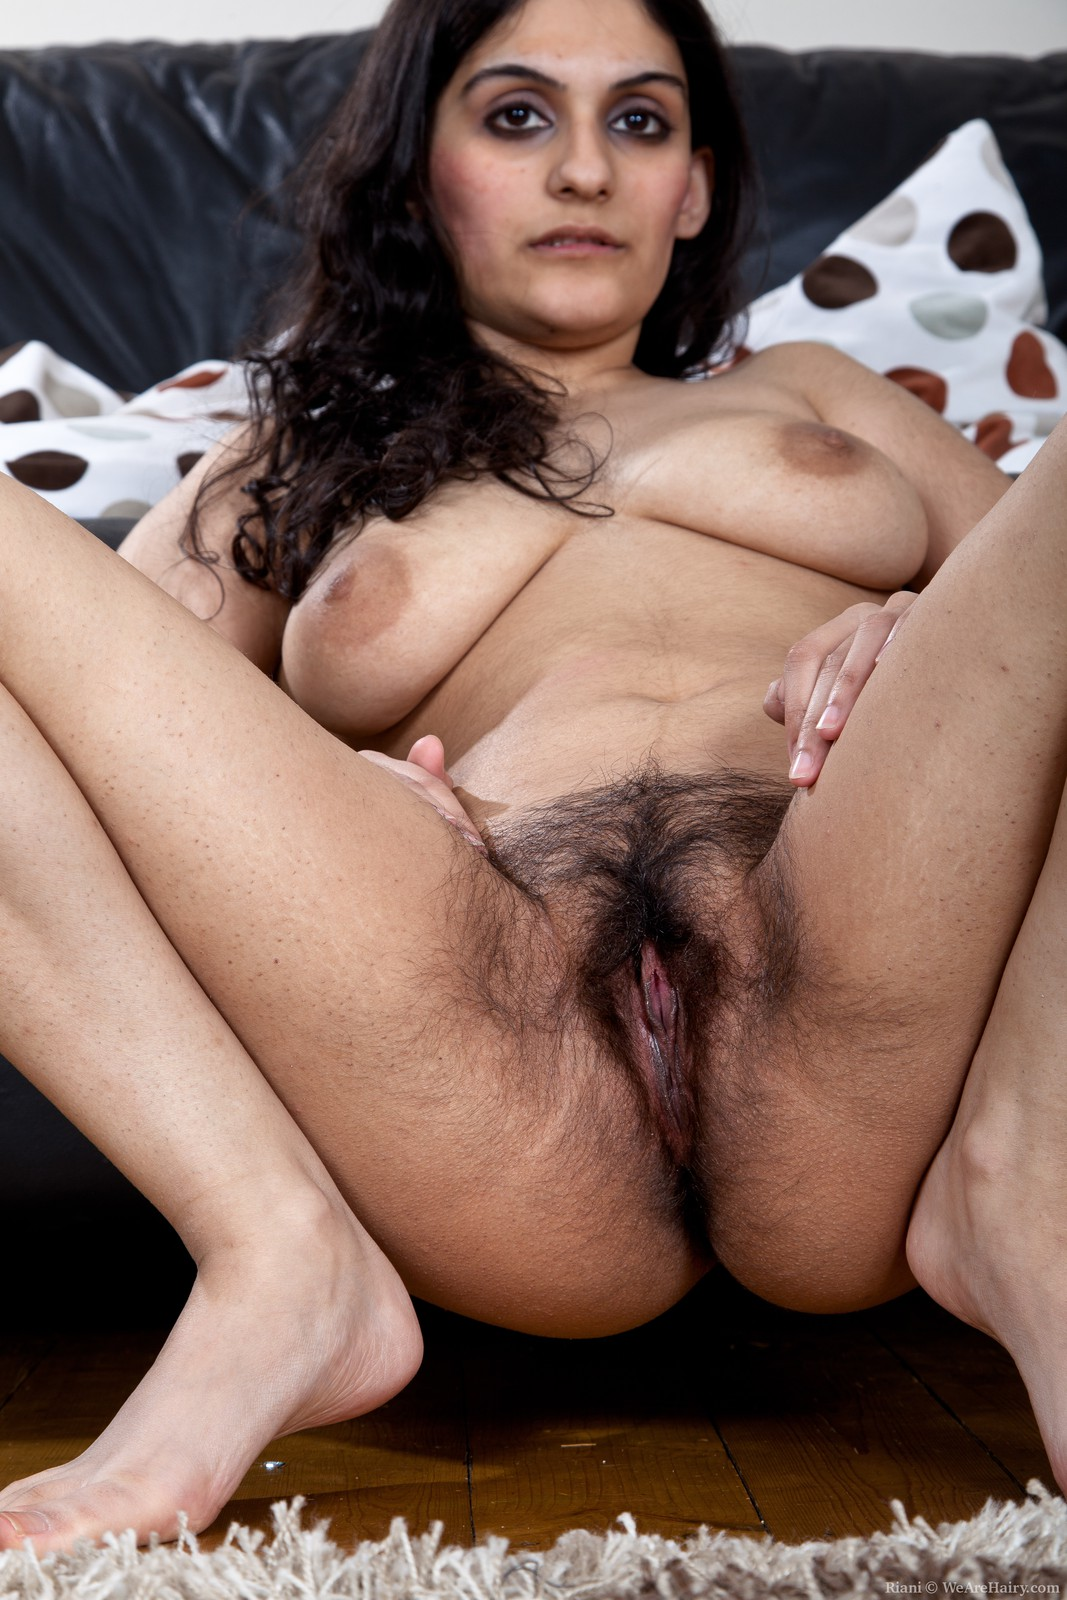 very hairy armpits free video clips hairy